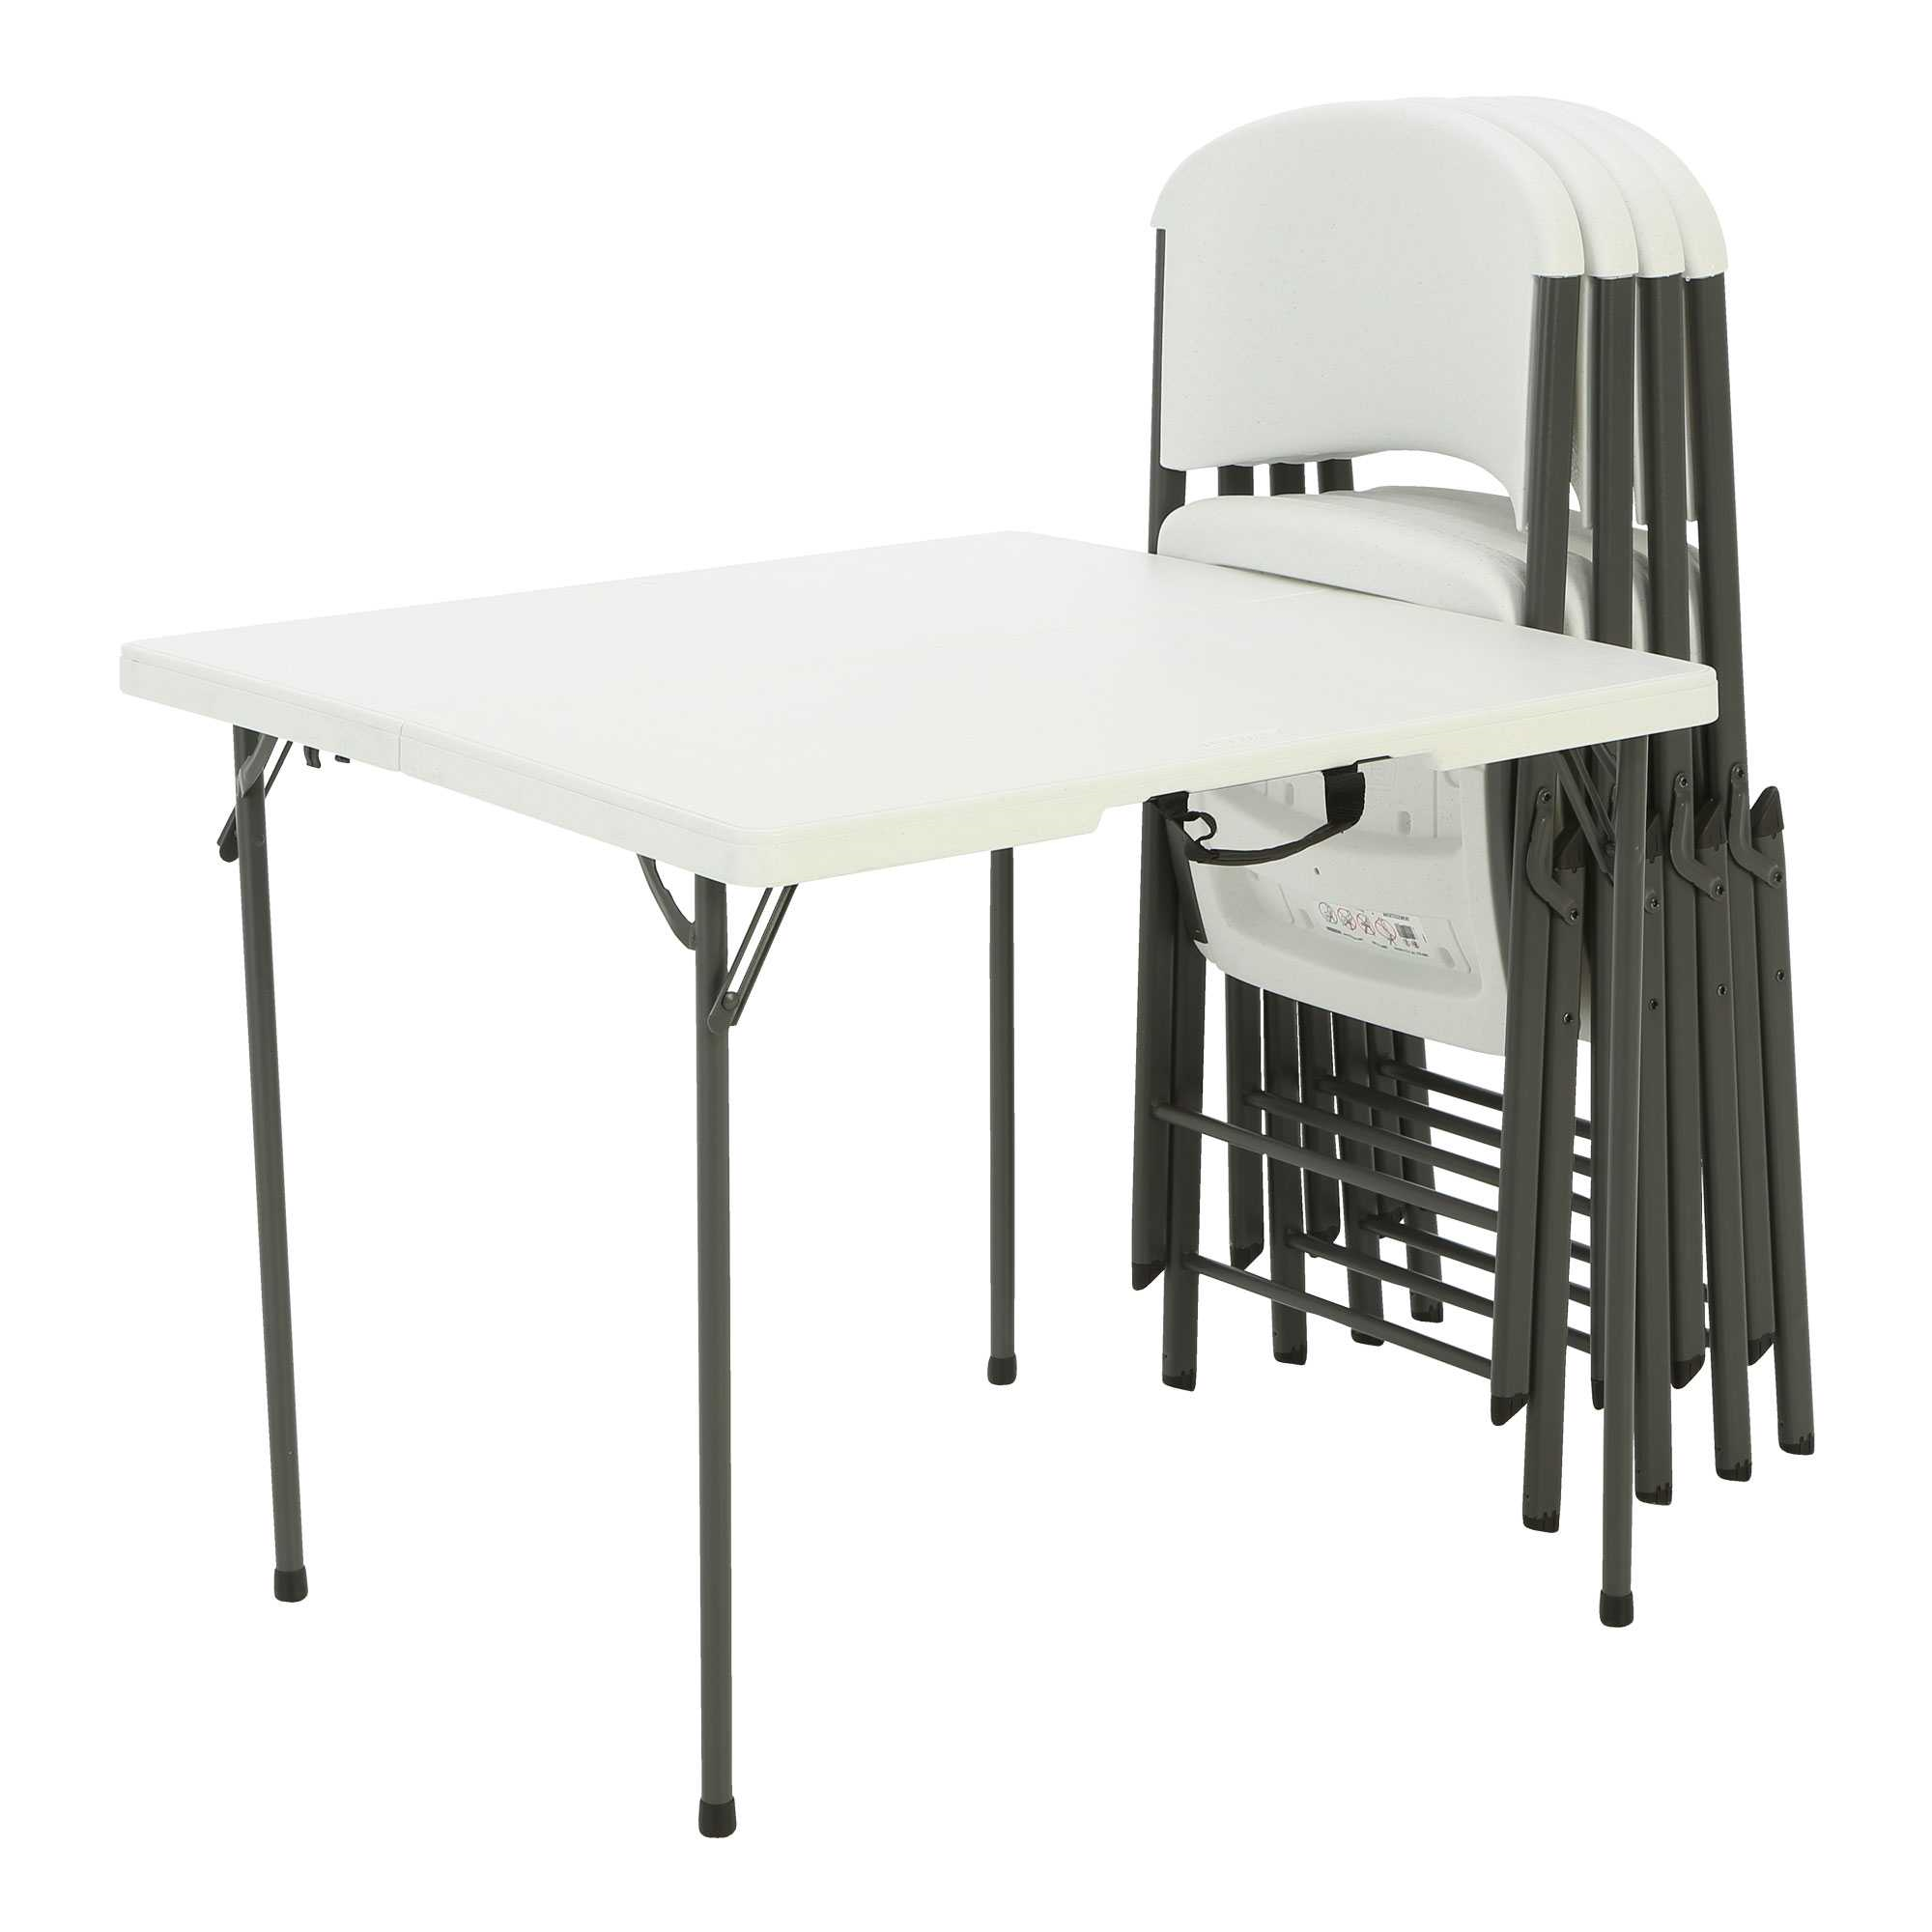 Lifetime 34-Inch Card Table and (4) Chairs Combo